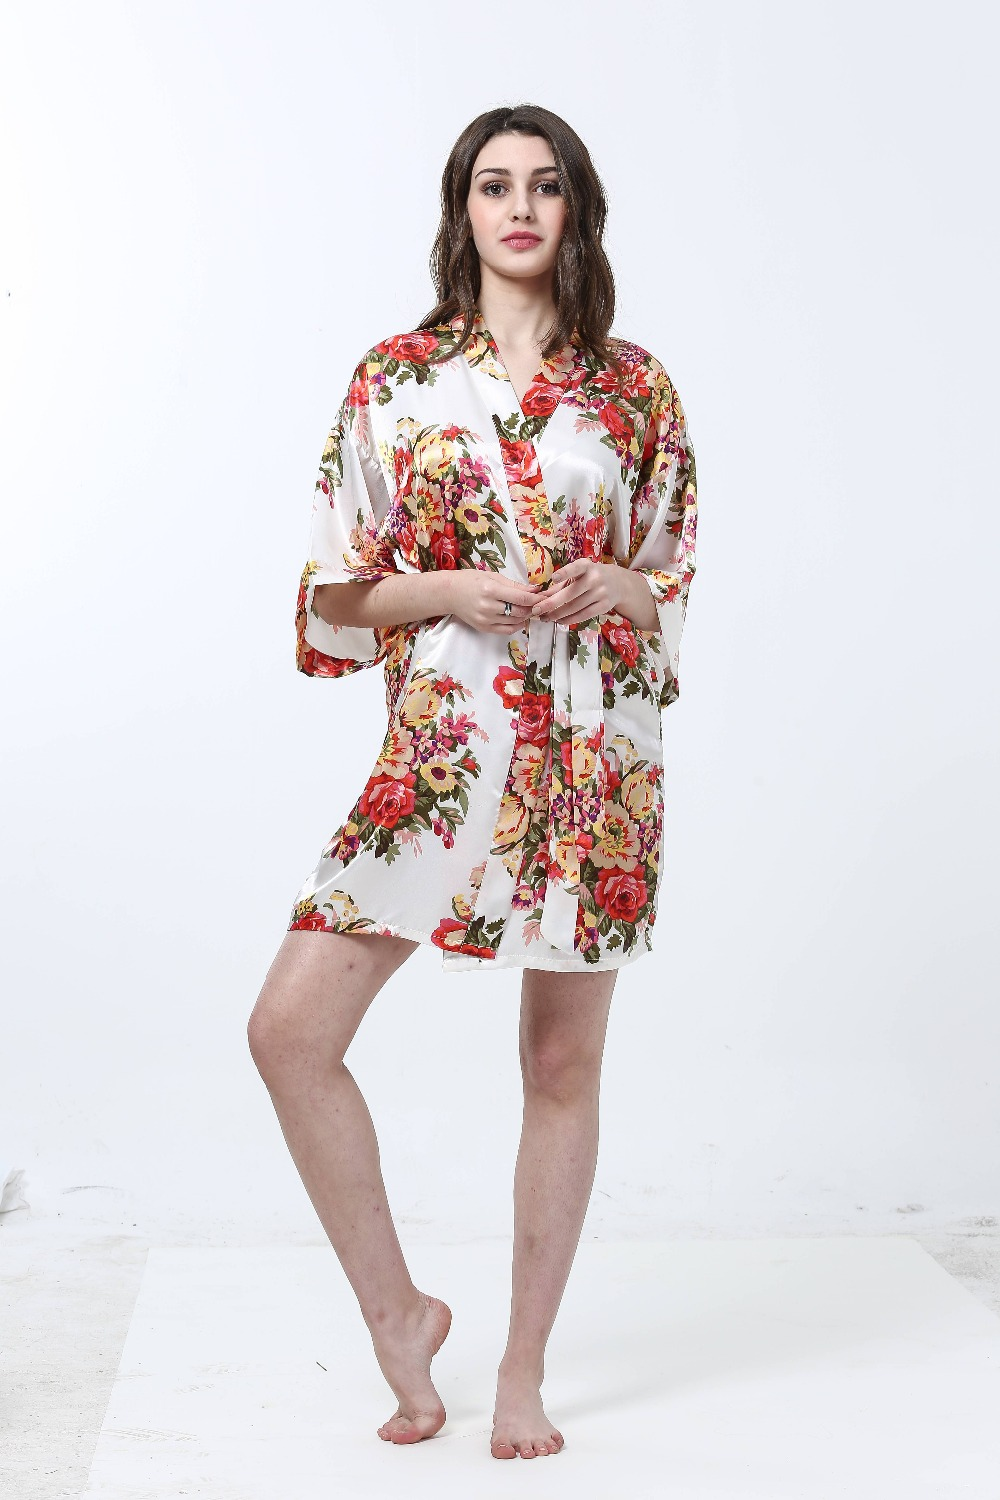 Women Floral Bathrobe Sexy Sleepwear Robe Night Bath Robe Soft Nightgown Fashion Dressing Gown Wedding Bride Bridesmaid Robe